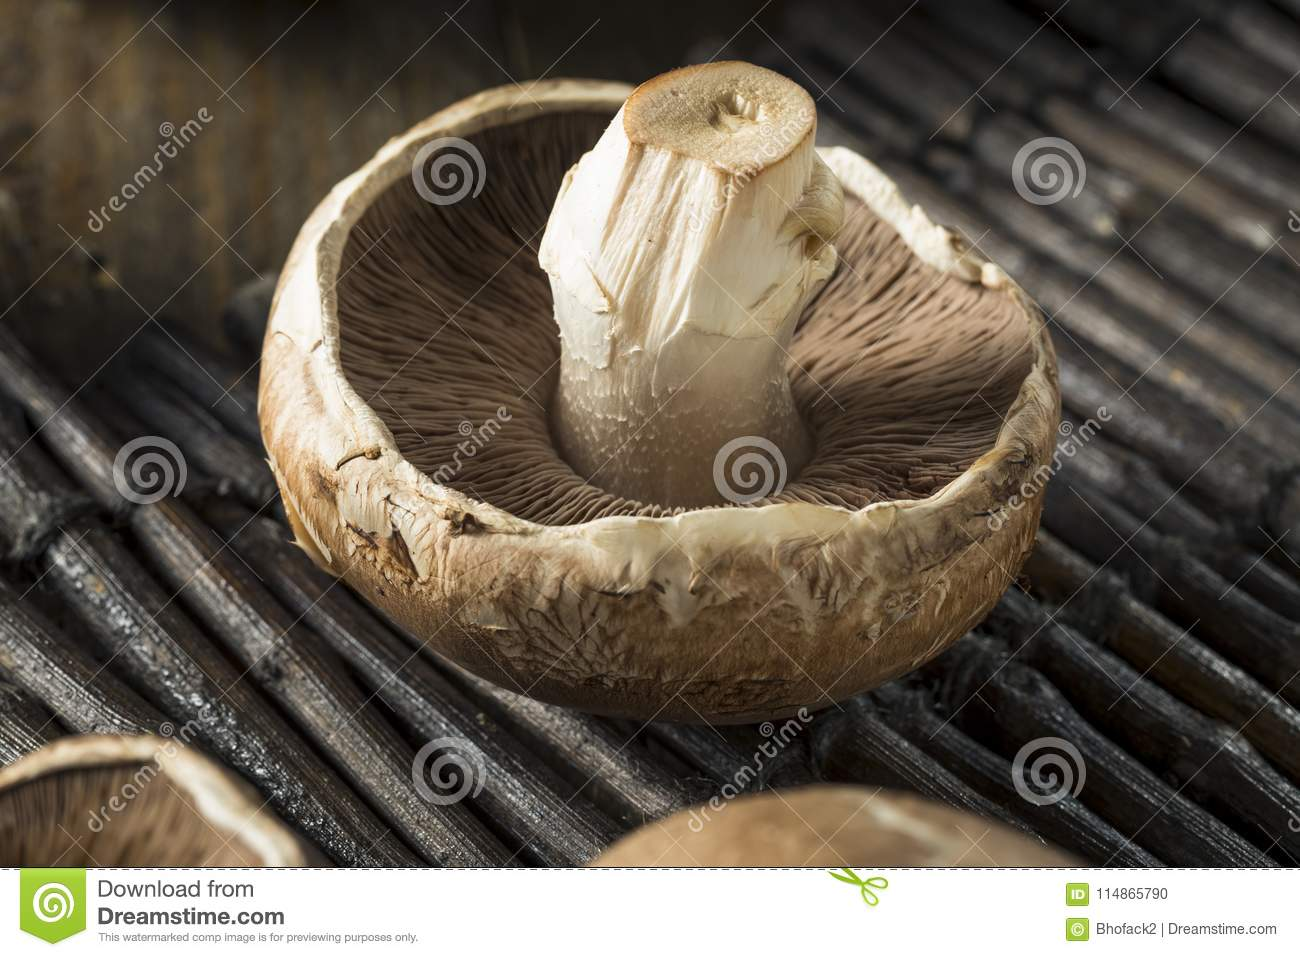 Raw Organic Portobello Mushrooms Stock Photo Image Of Delicious Button 114865790